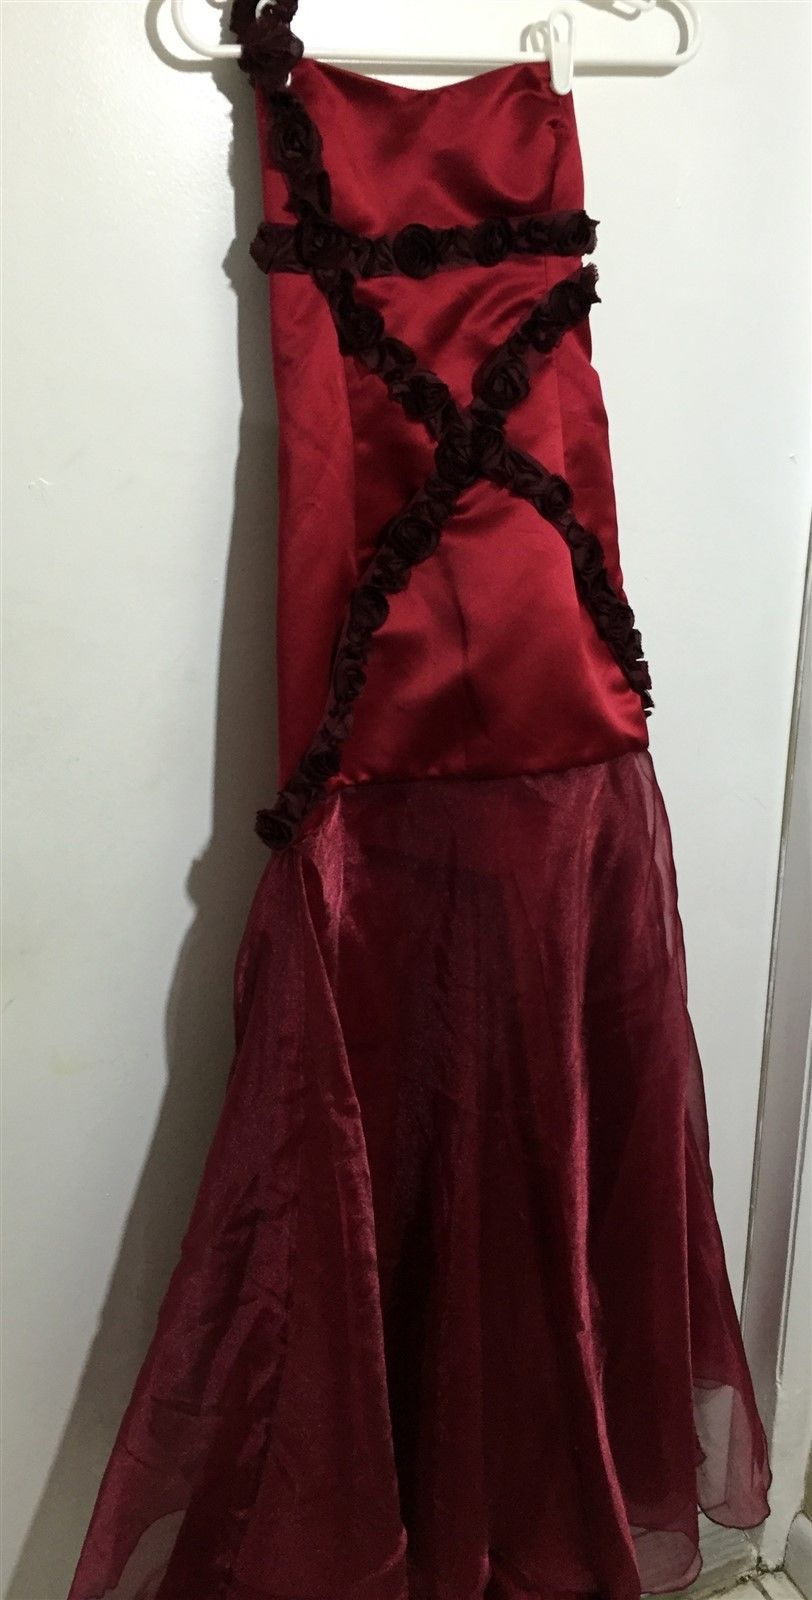 Nice vtg custom rose red floral long sheer prom ball gown dress sz